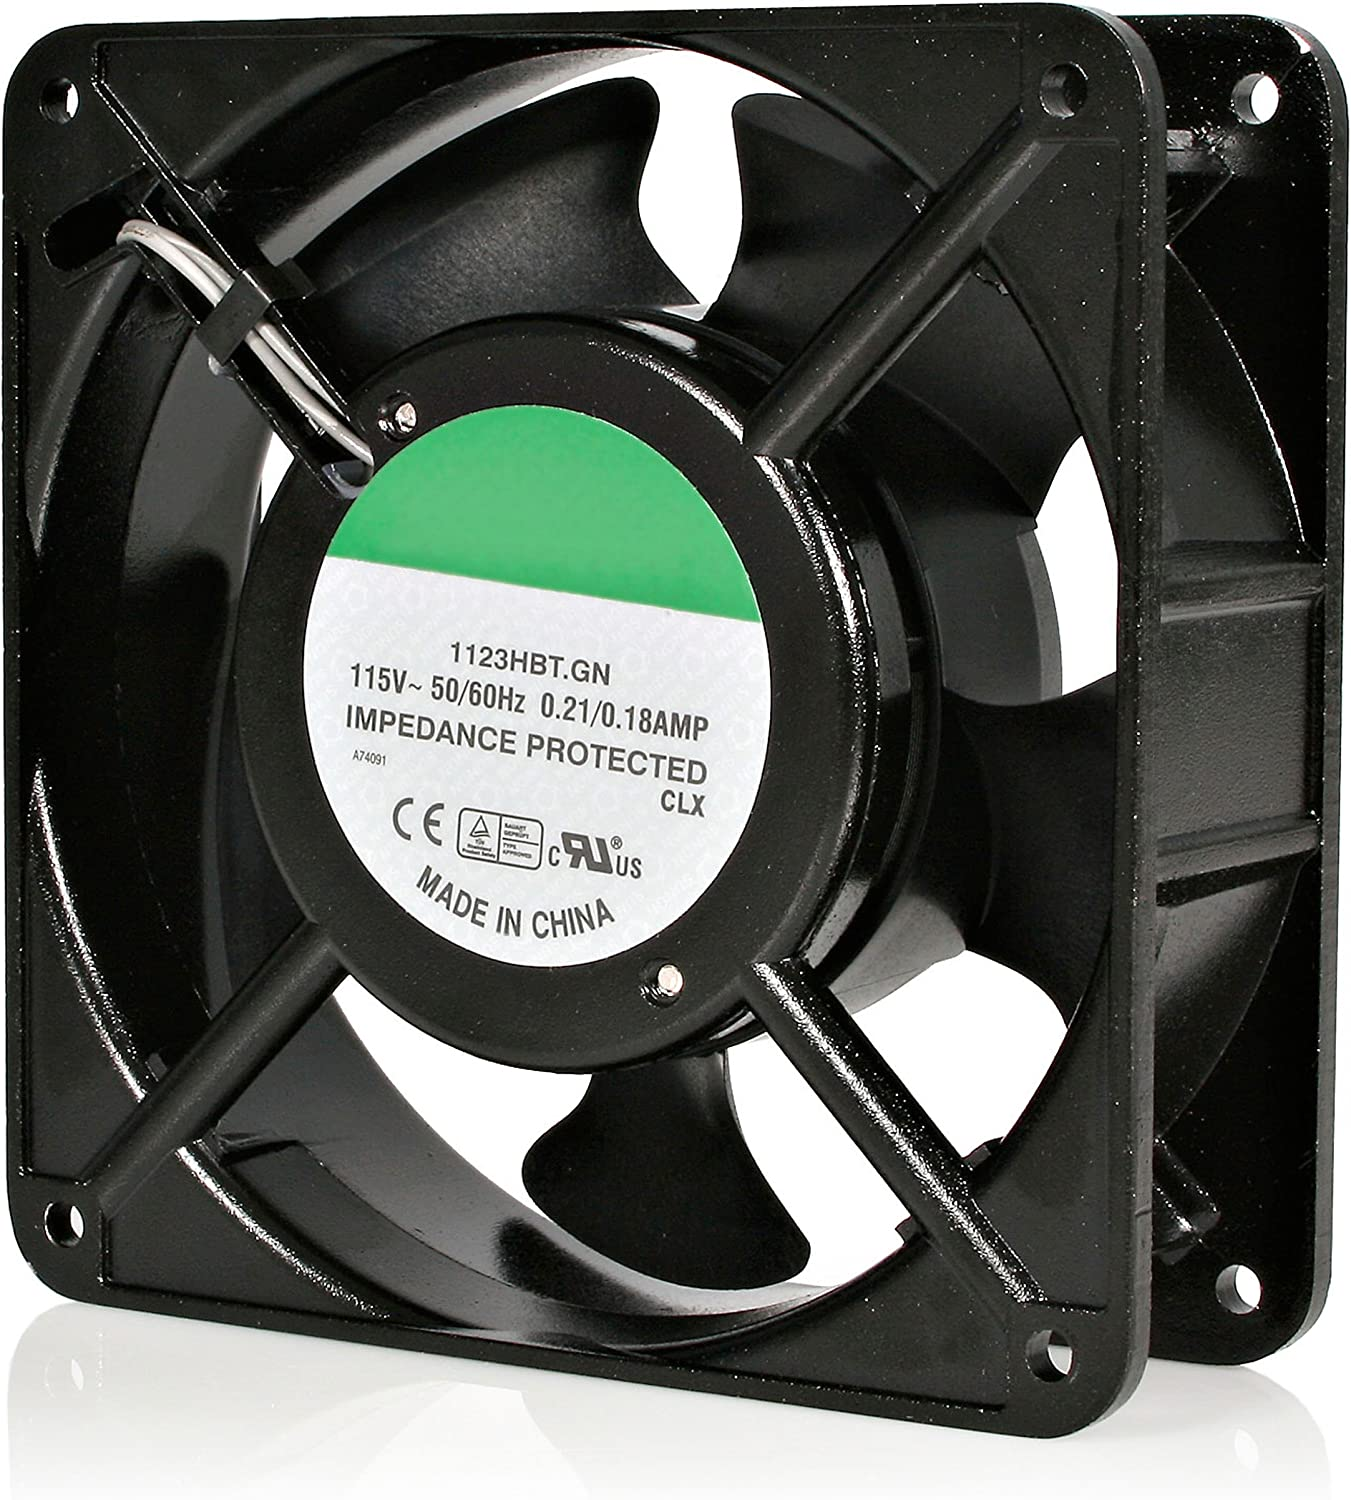 StarTech.com 120mm Axial Rack Muffin Fan for Server Cabinet - 115V - AC Cooling - Low Noise & Quiet PC Computer Case Fan (ACFANKIT12),Black